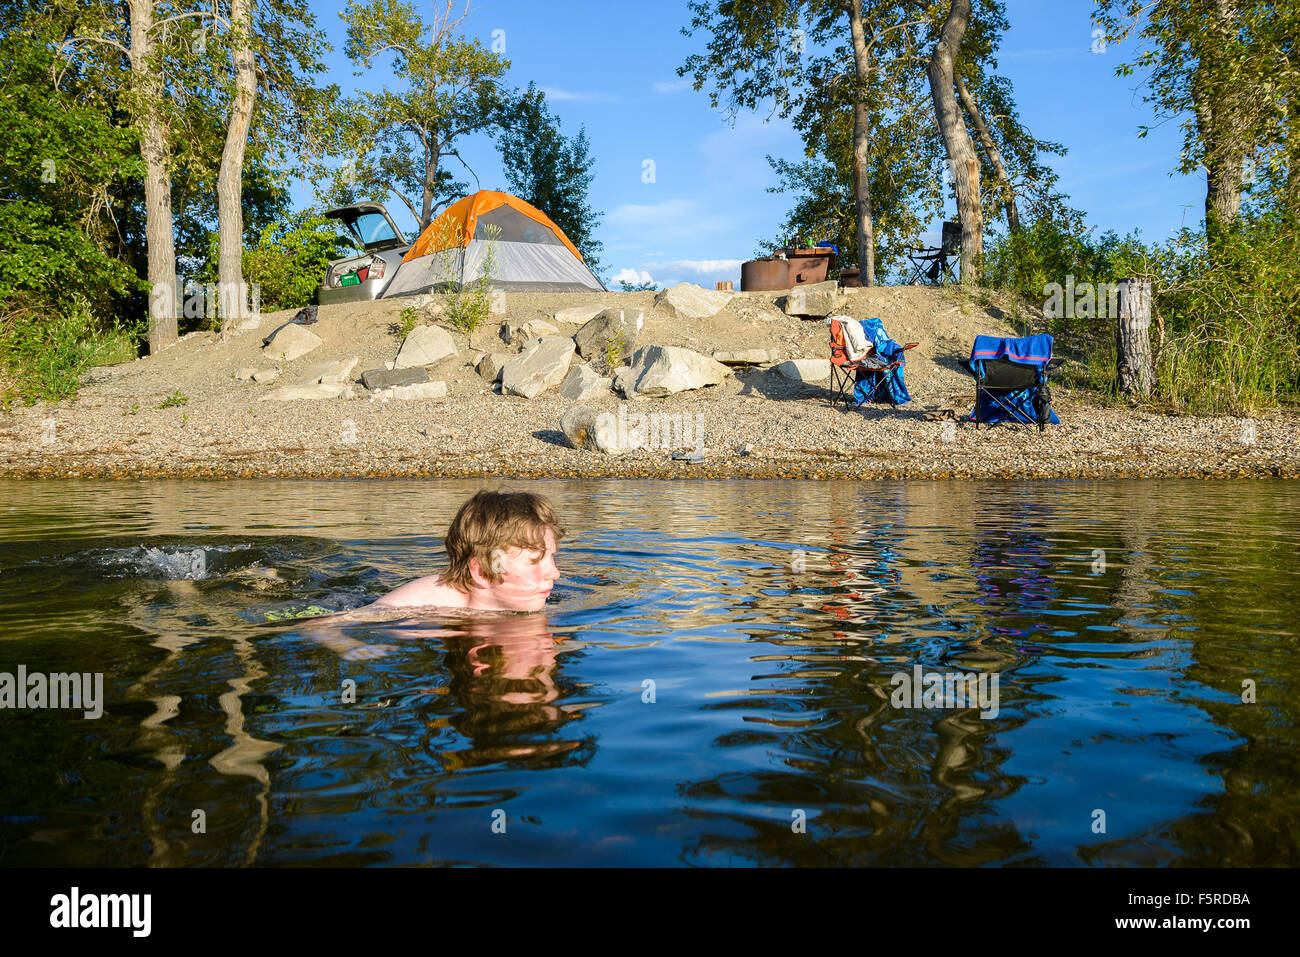 Boy swims in water at lake shore campsite, Haynes Point Provincial Park, Osoyoos, British Columbia, Canada - Stock Image